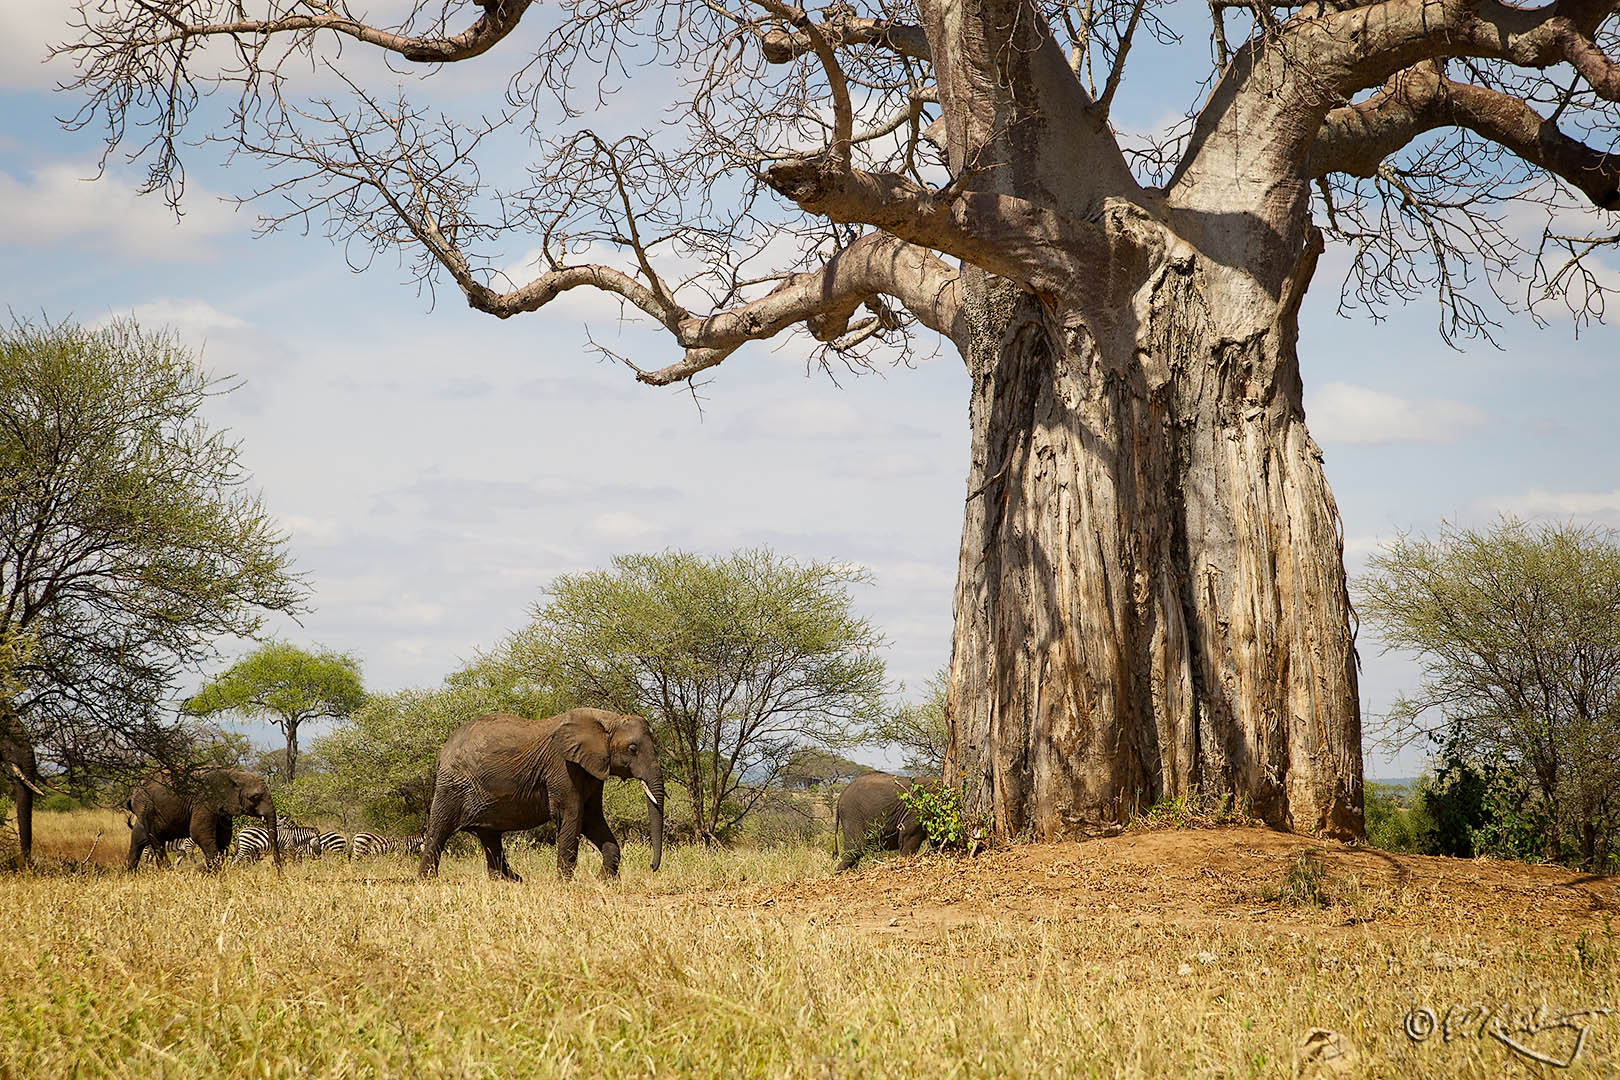 Elephants_at_Baobob_Tree